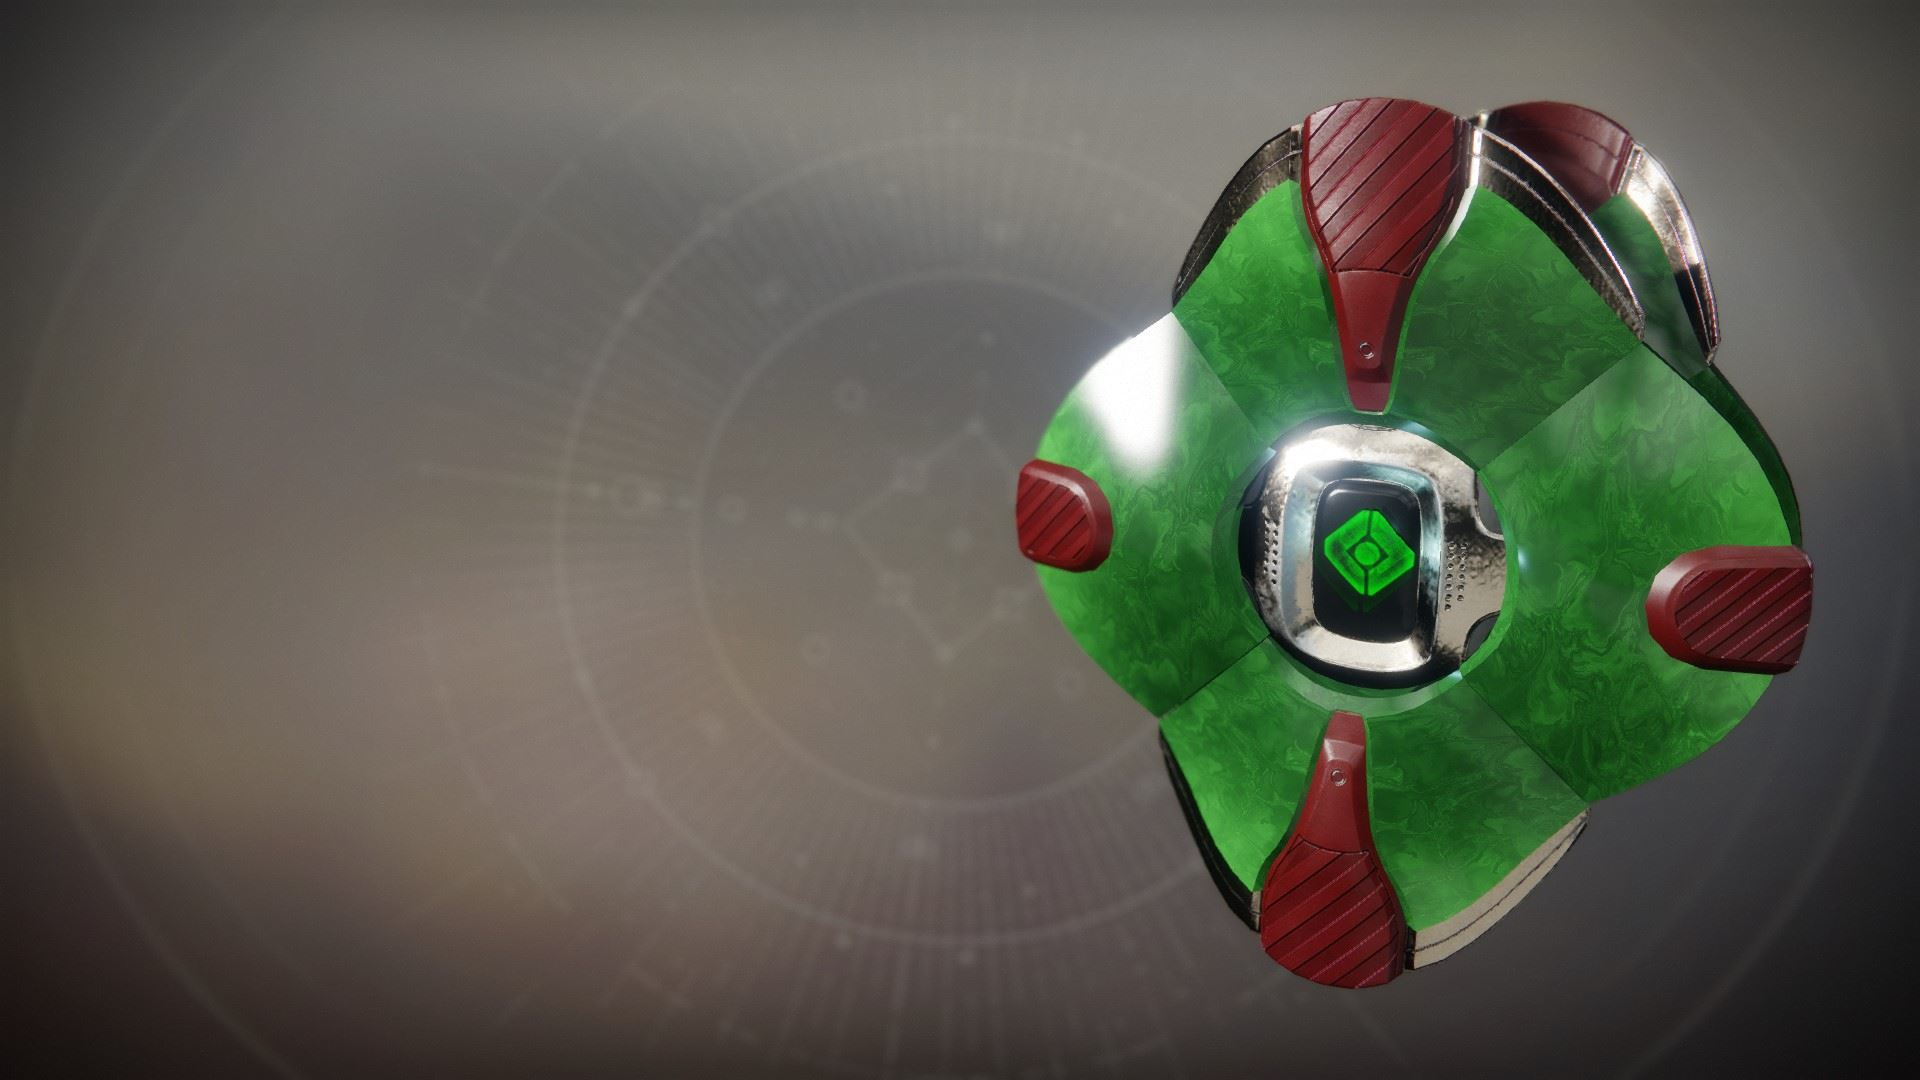 An in-game render of the Bursting Wisdom Shell.